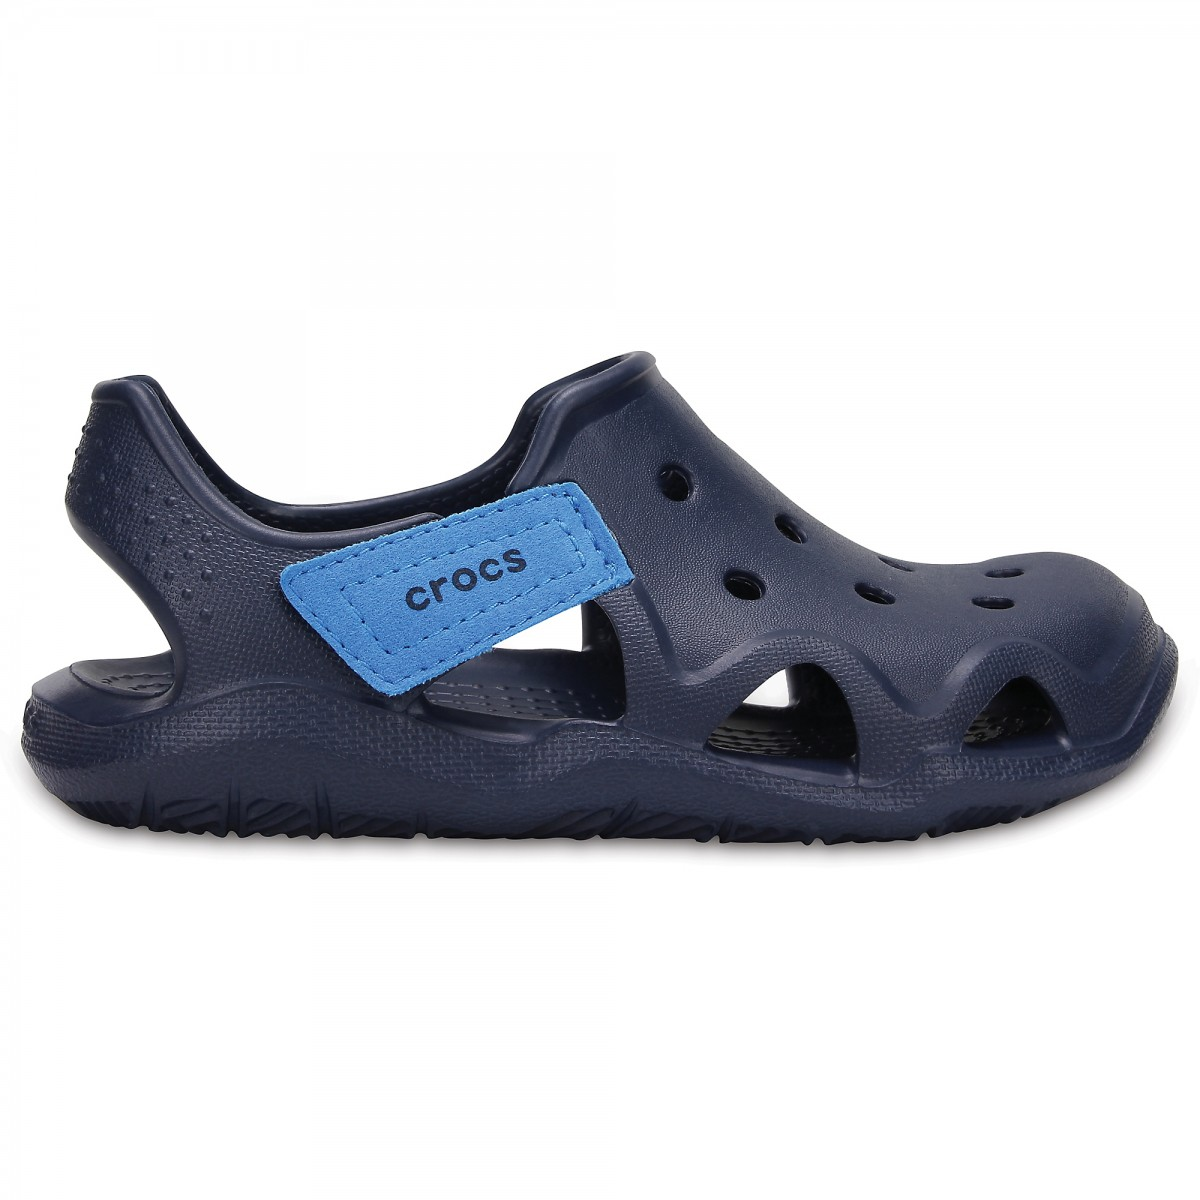 Saboți Copii casual Crocs Swiftwater Wave K Albaștri -13